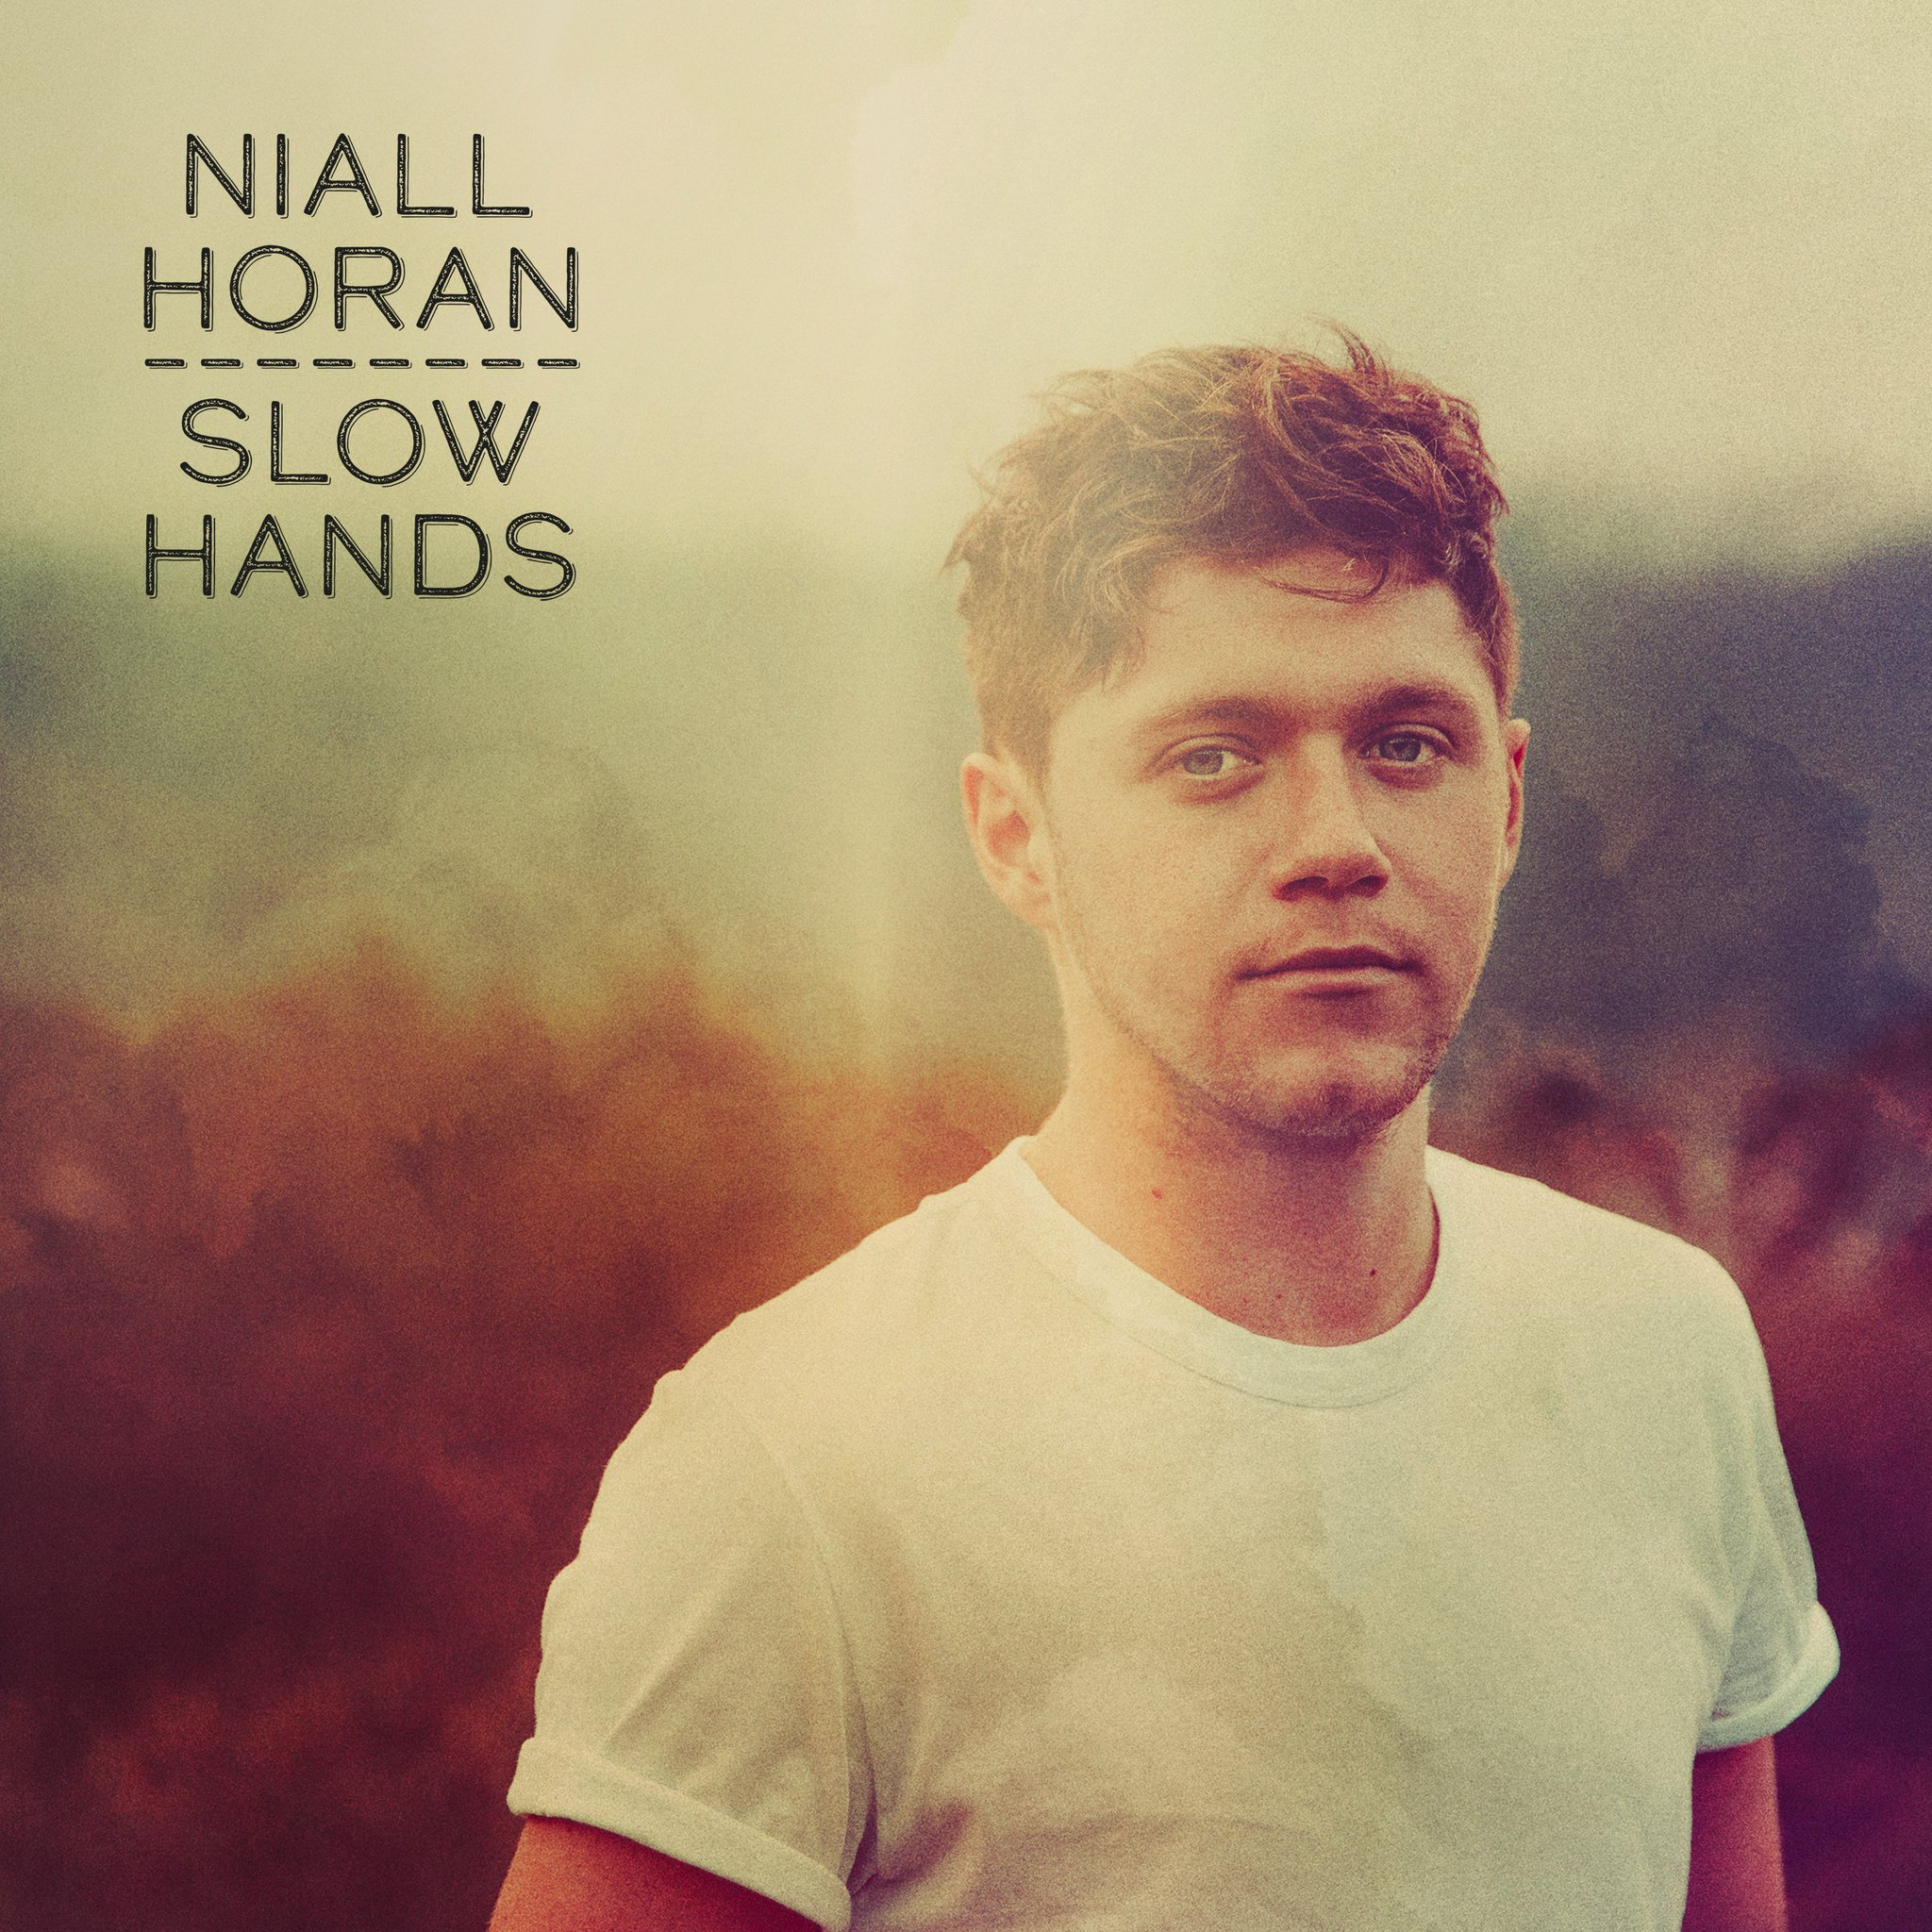 Niall Horan's Slow hands is this week's top debut [Cover Photo via ...